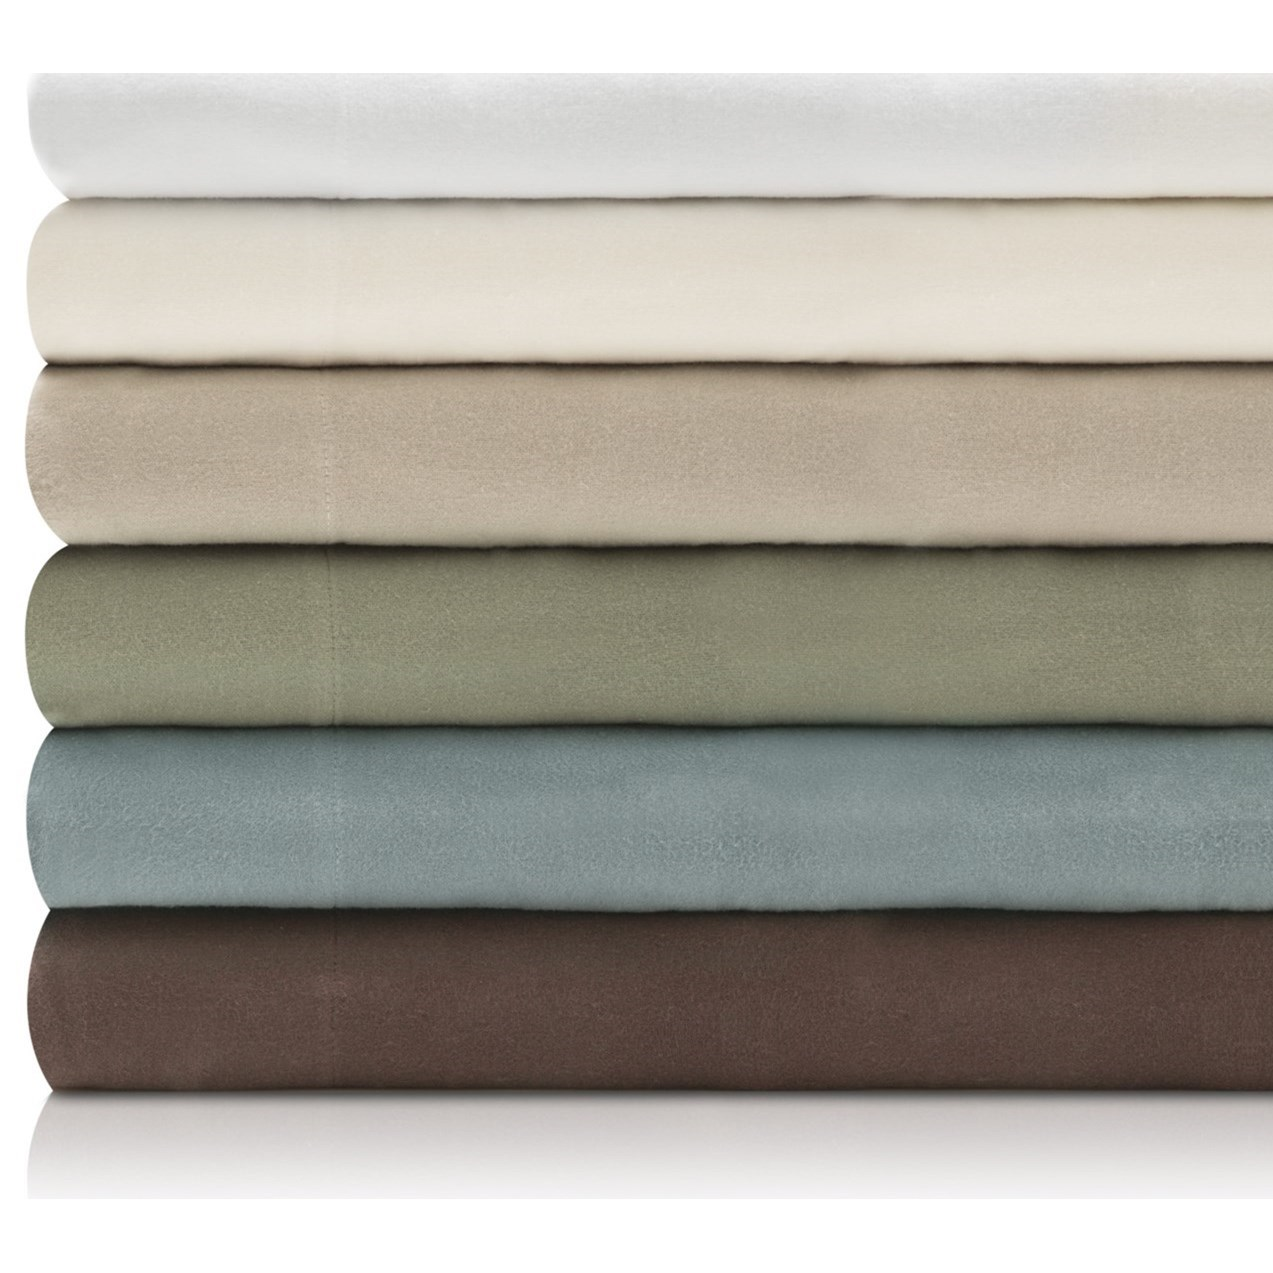 Malouf Portuguese Flannel Twin XL Woven™ Portuguese Flannel Sheet Set - Item Number: WO19TXOAFS